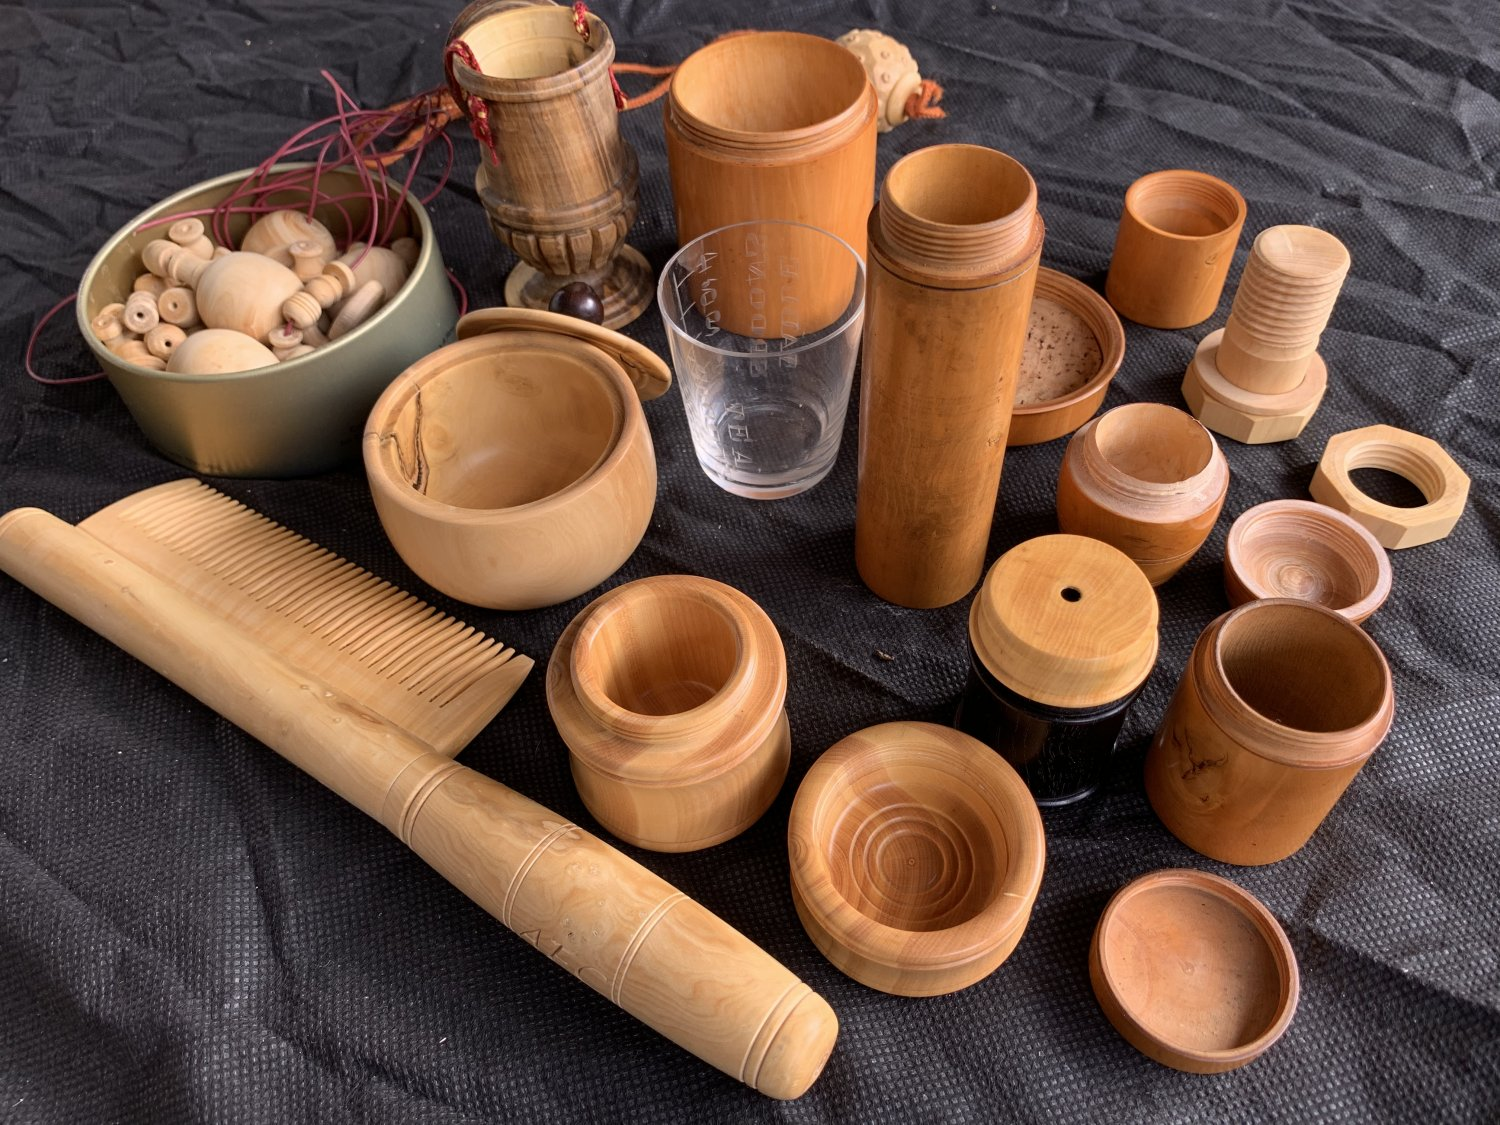 Pots, combs and beads